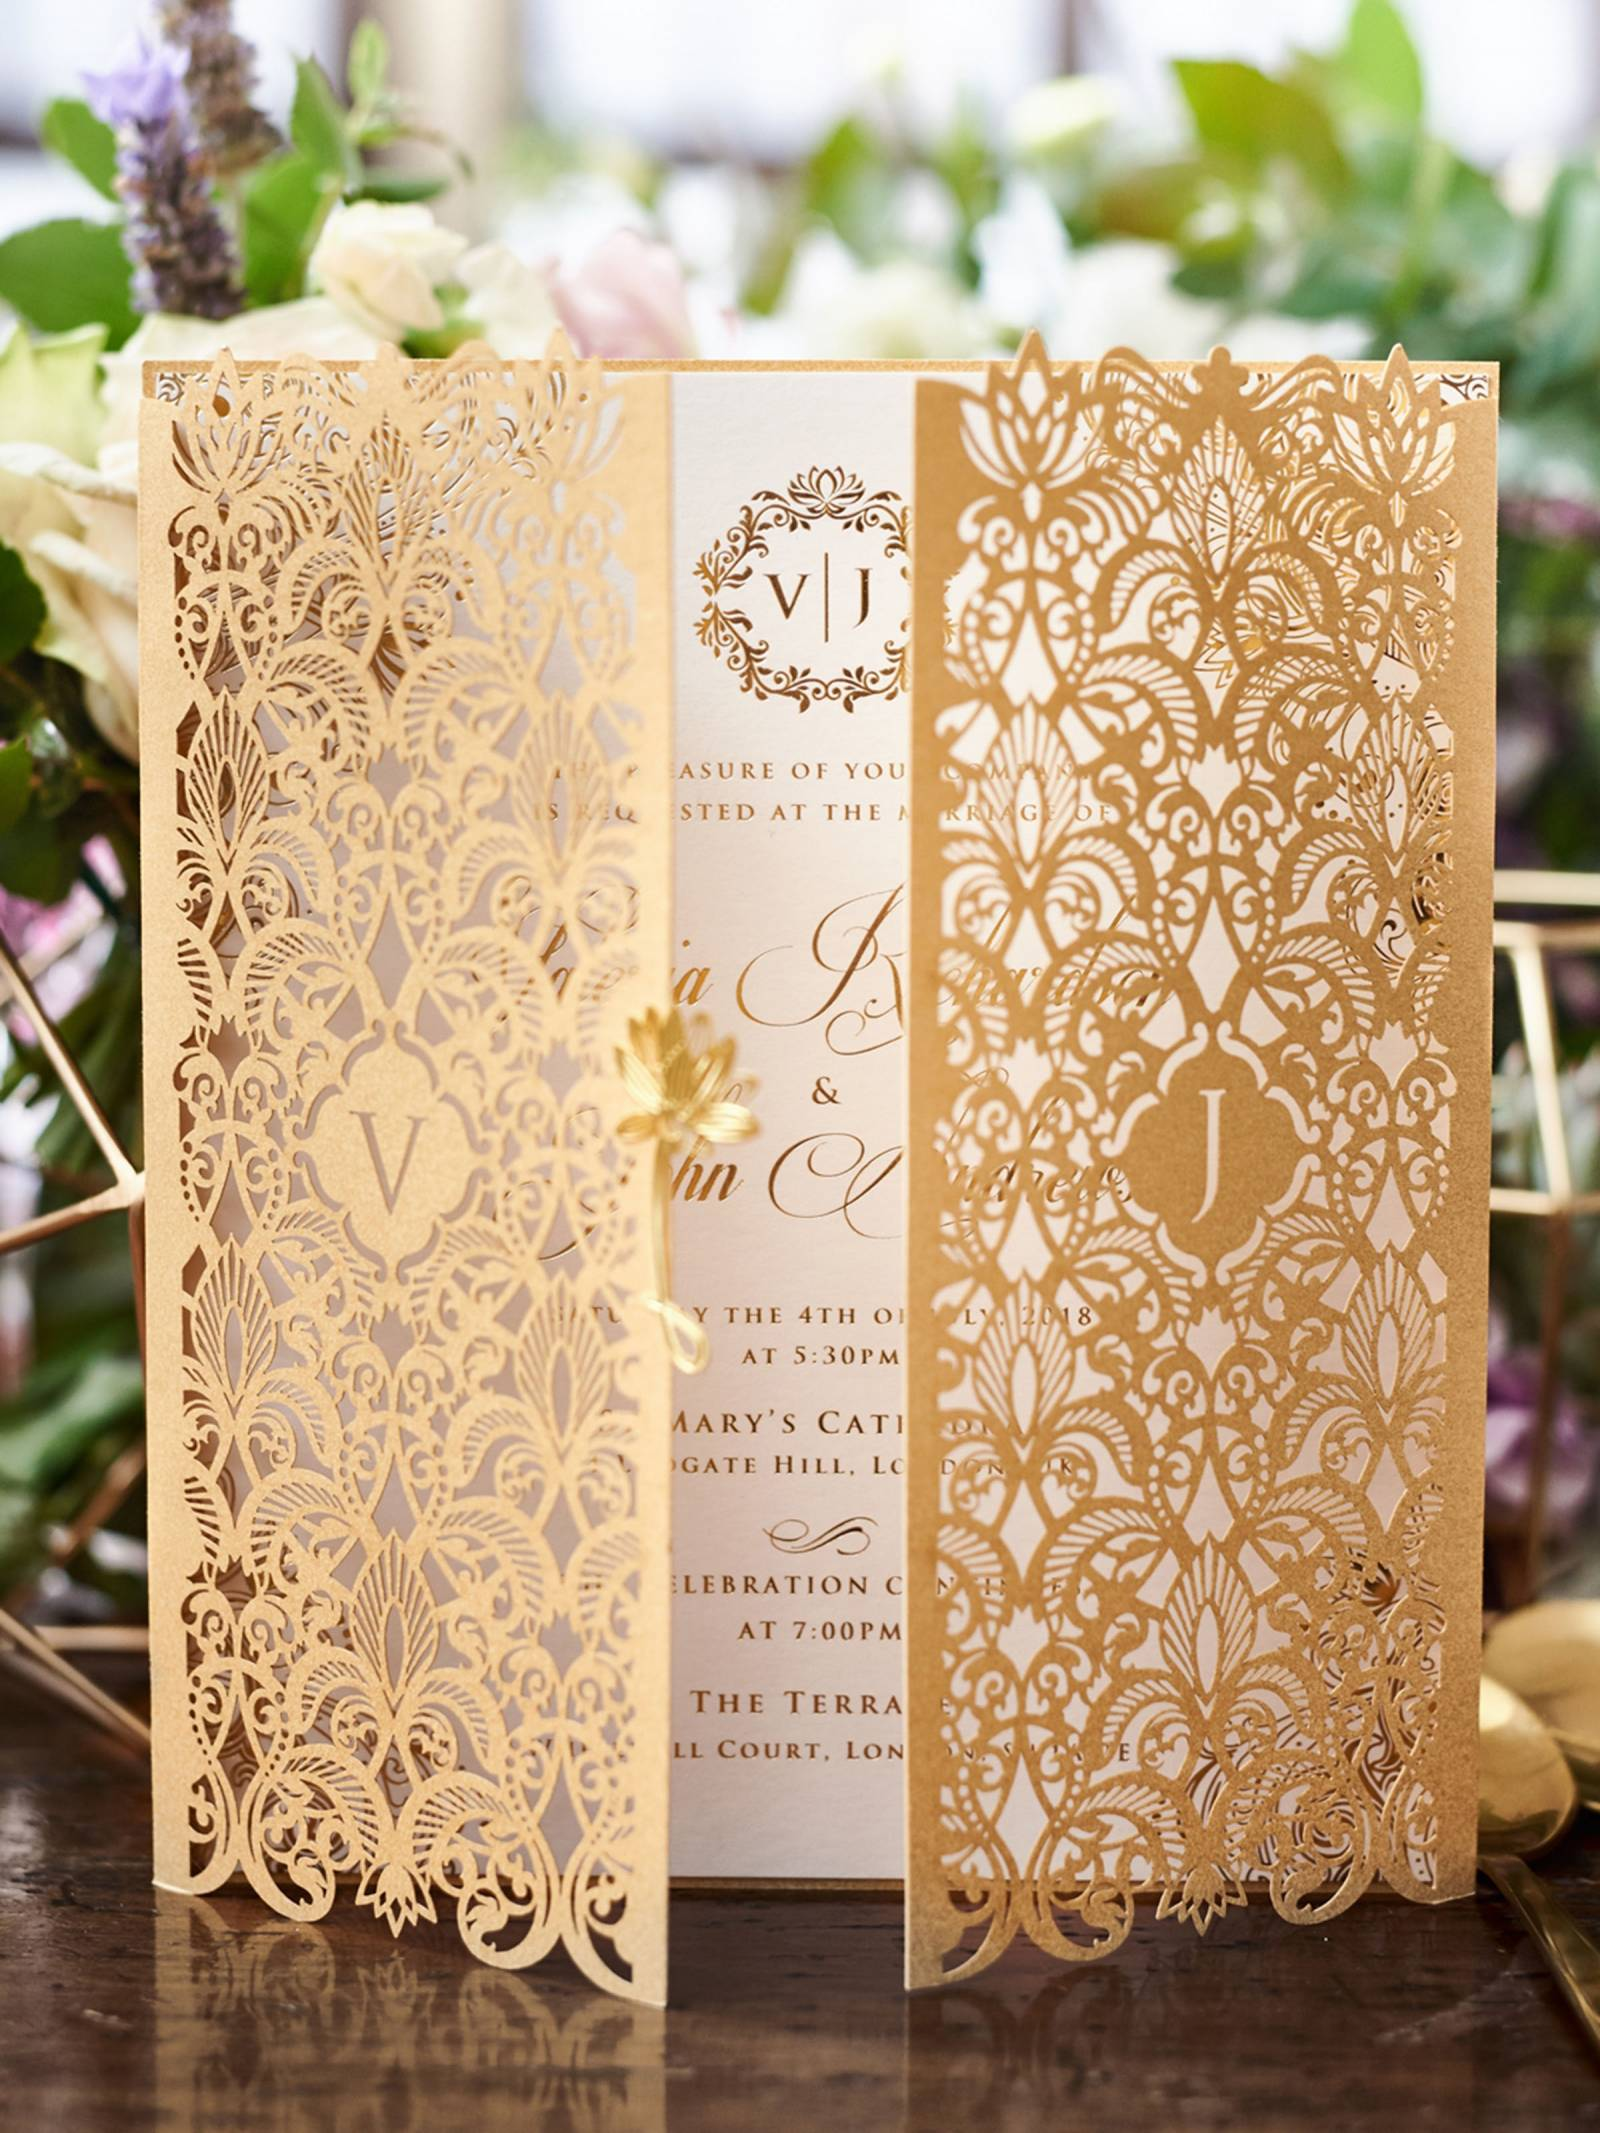 Ornate gold and white wedding invitation